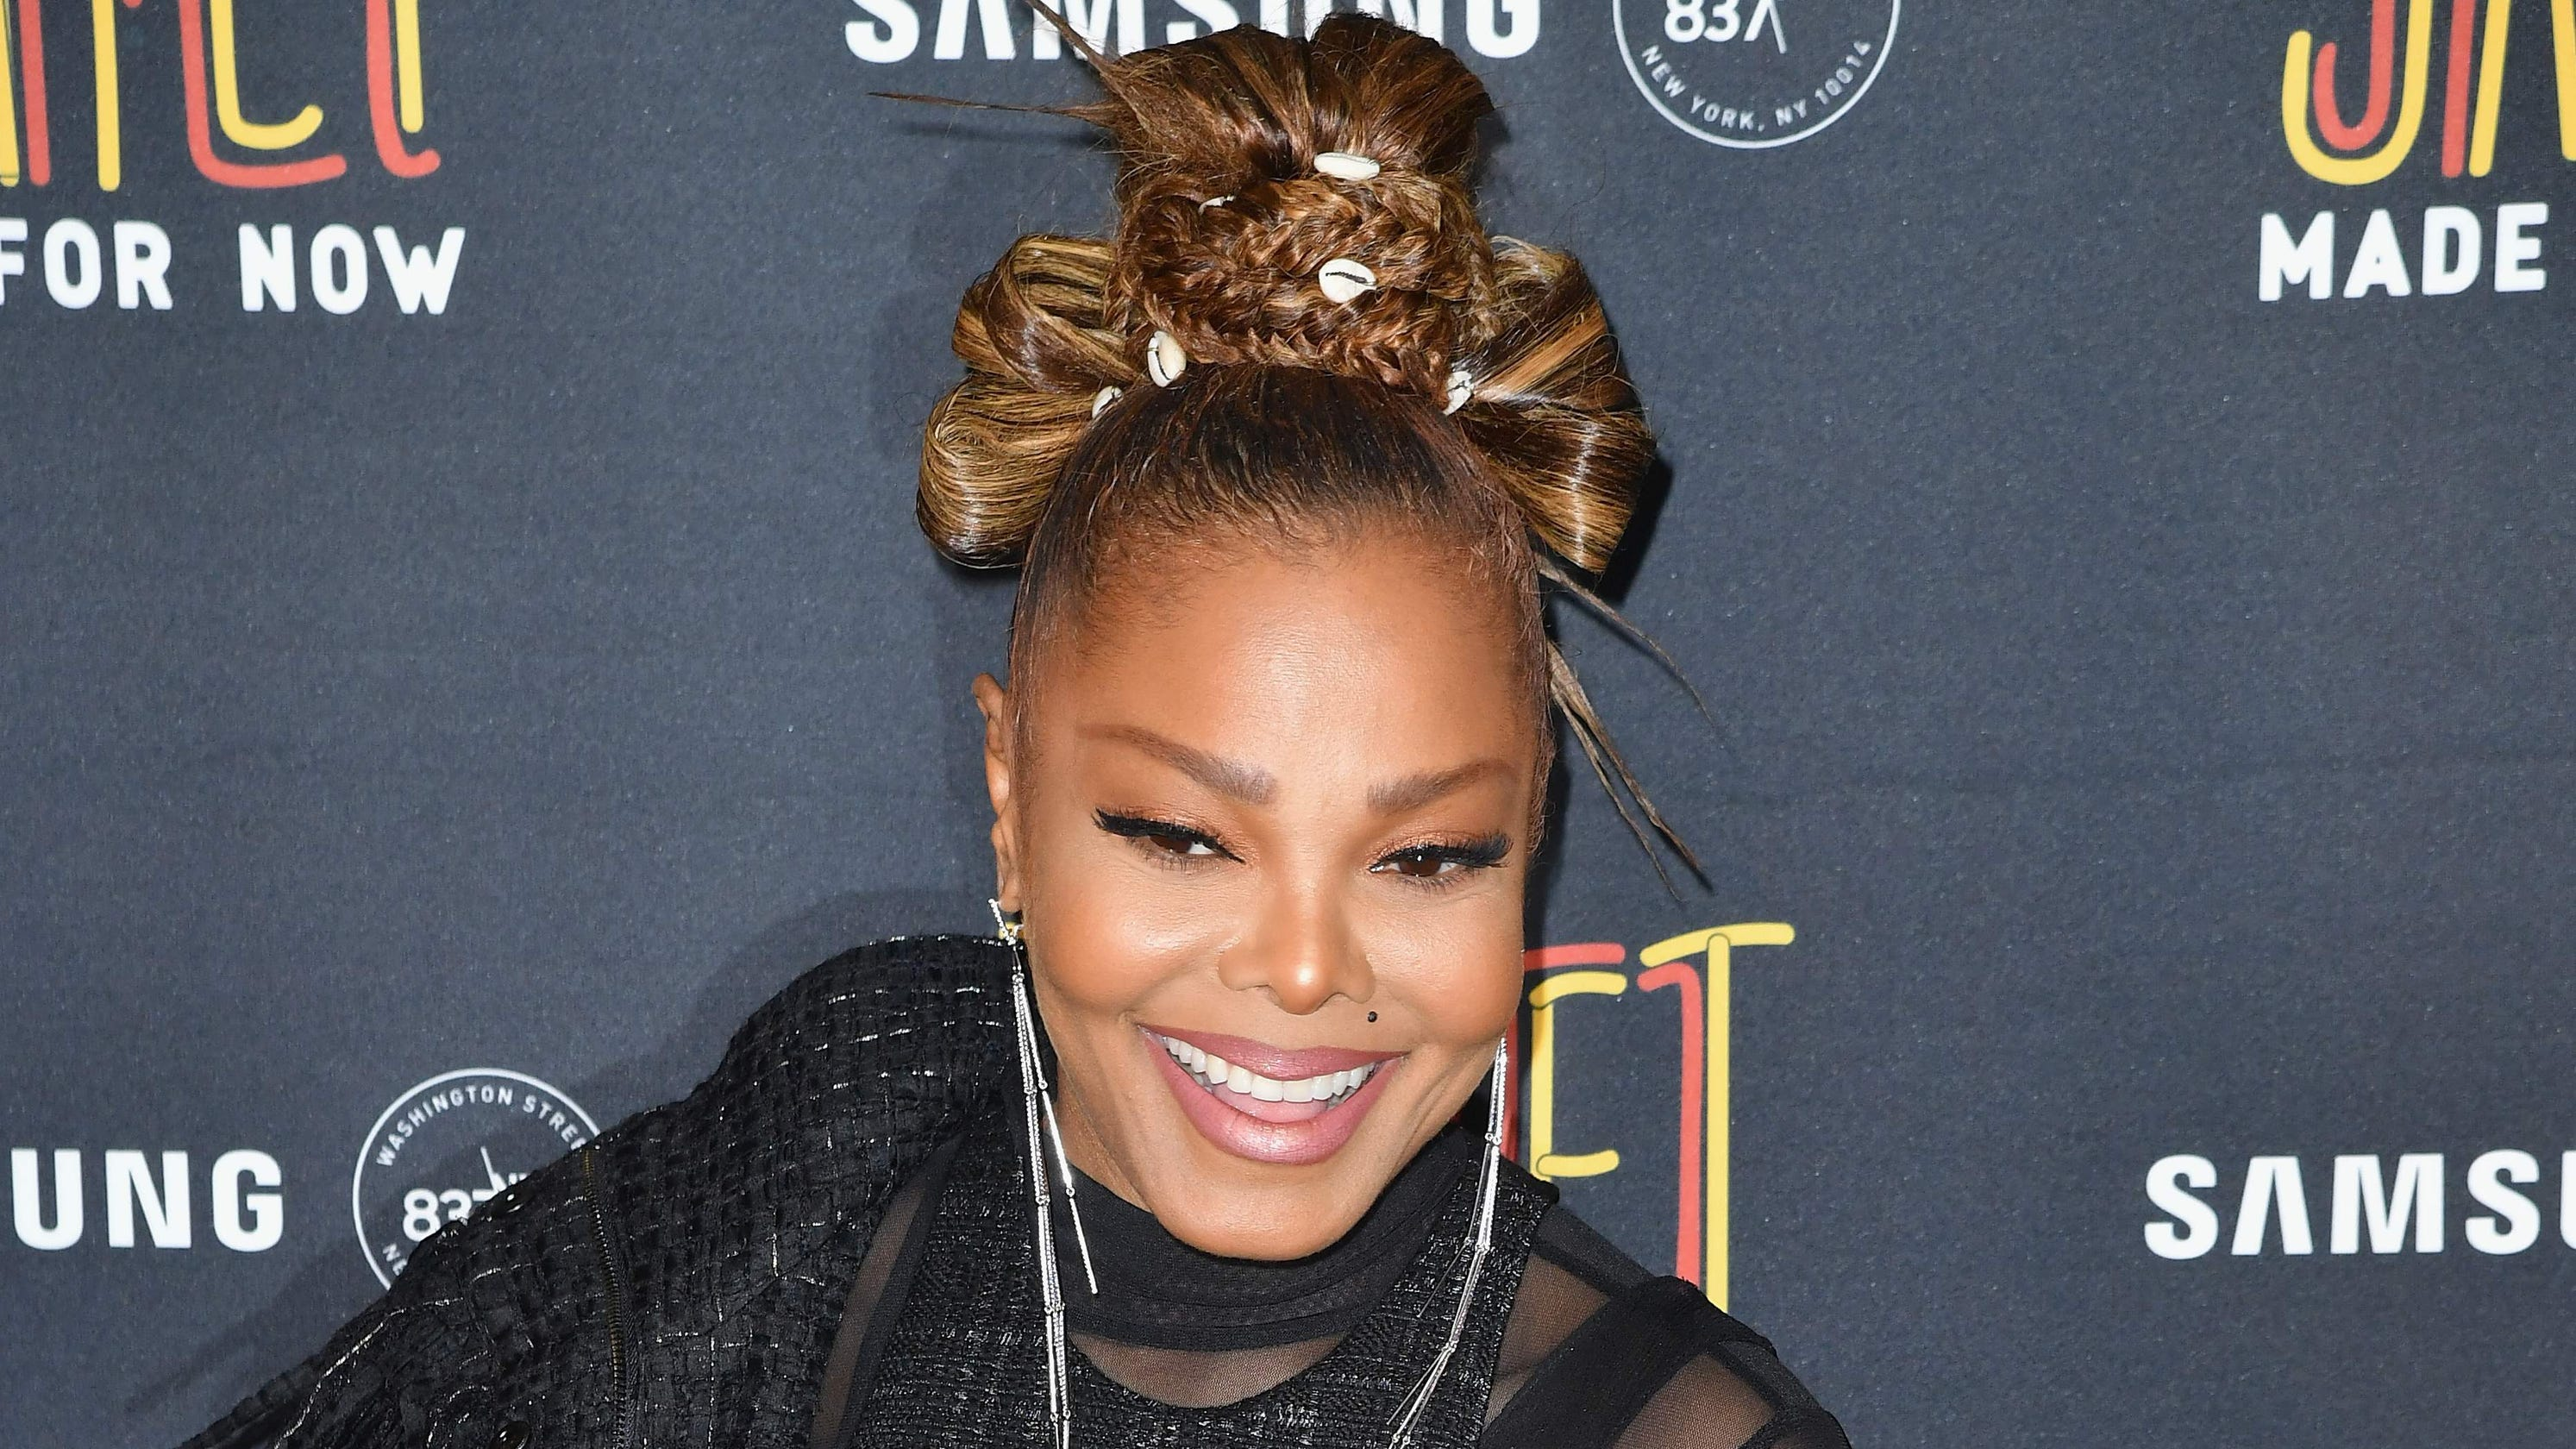 Janet Jackson's Las Vegas residency to kick off in May